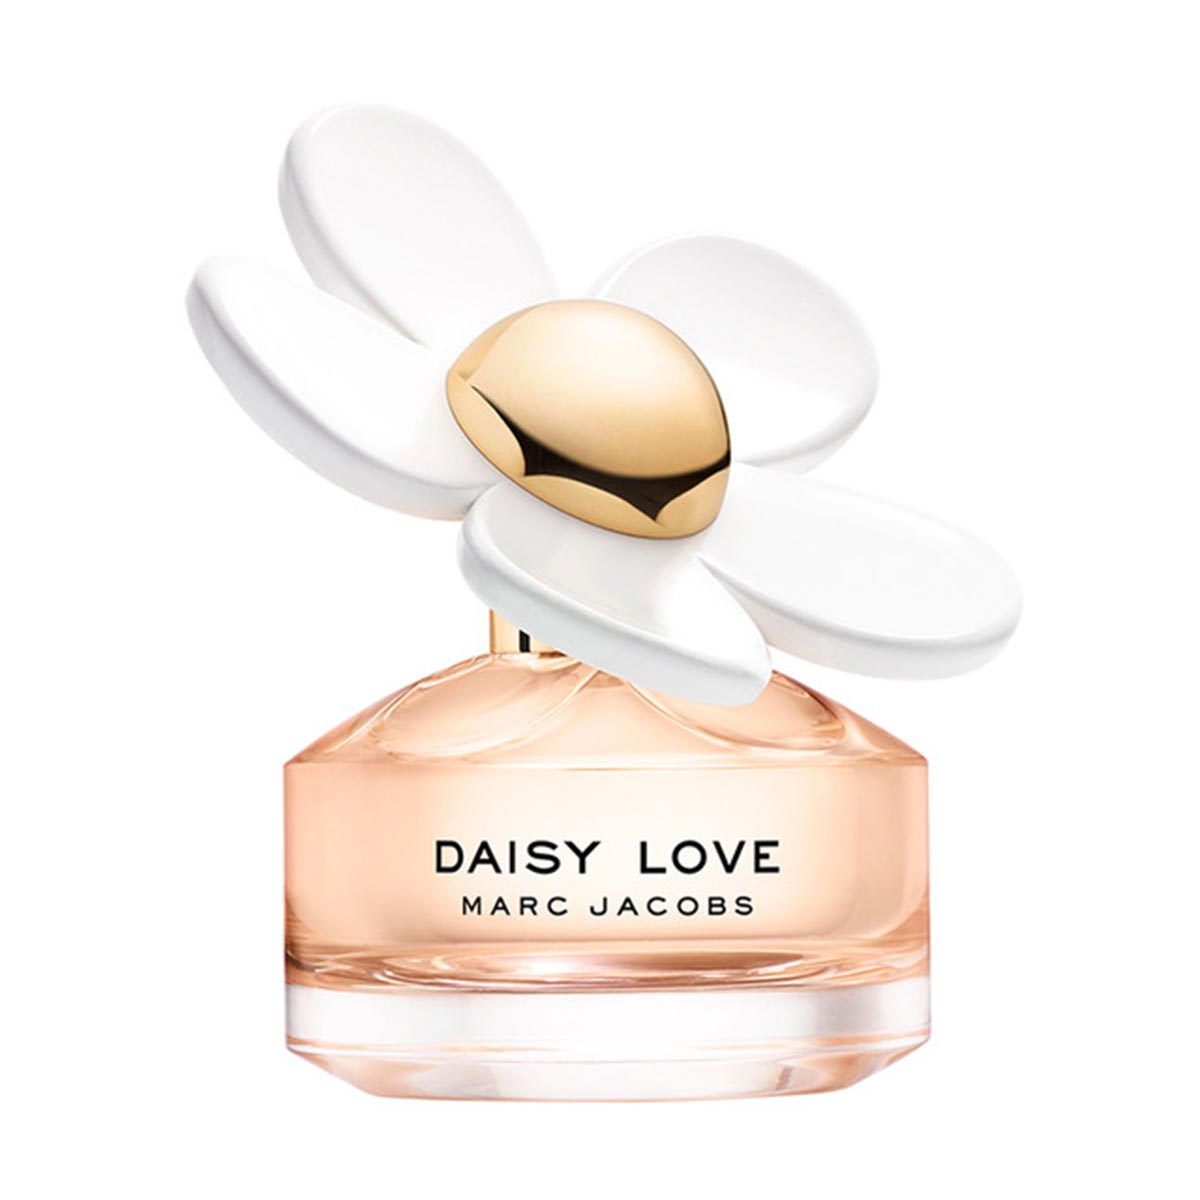 Marc jacobs daisy love eau de toilette 30ml vaporizador